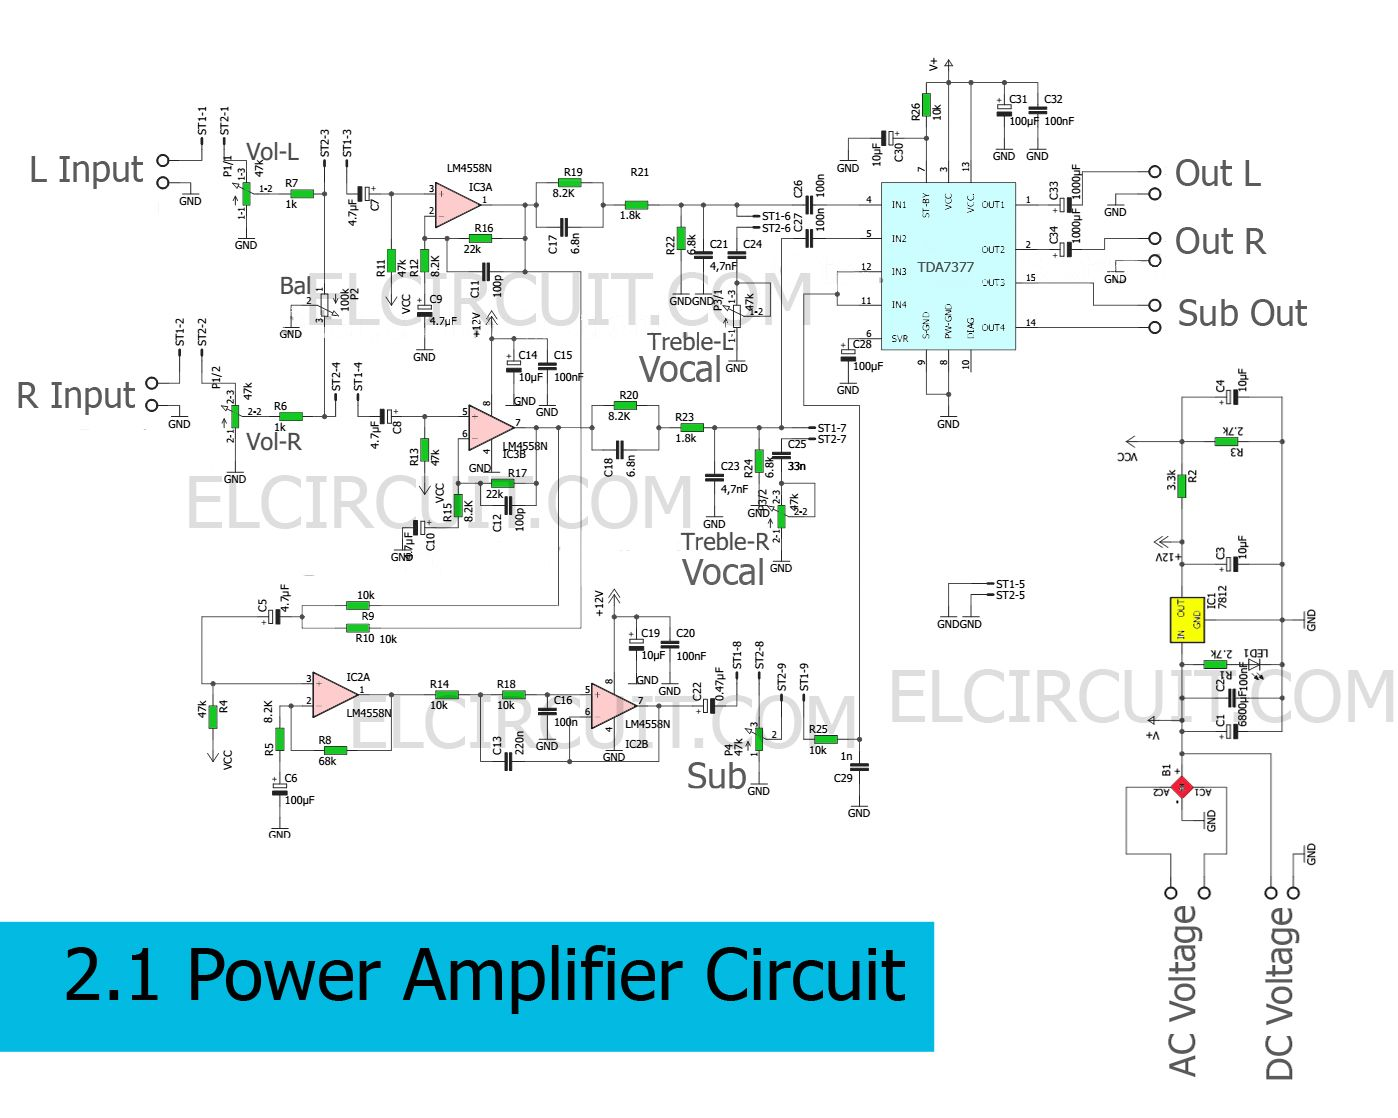 21 Power Amplifier Using Tda7377 En 2018 Audio Y Video Circuit 2000w Amp Ocl Sanken Schematic Of